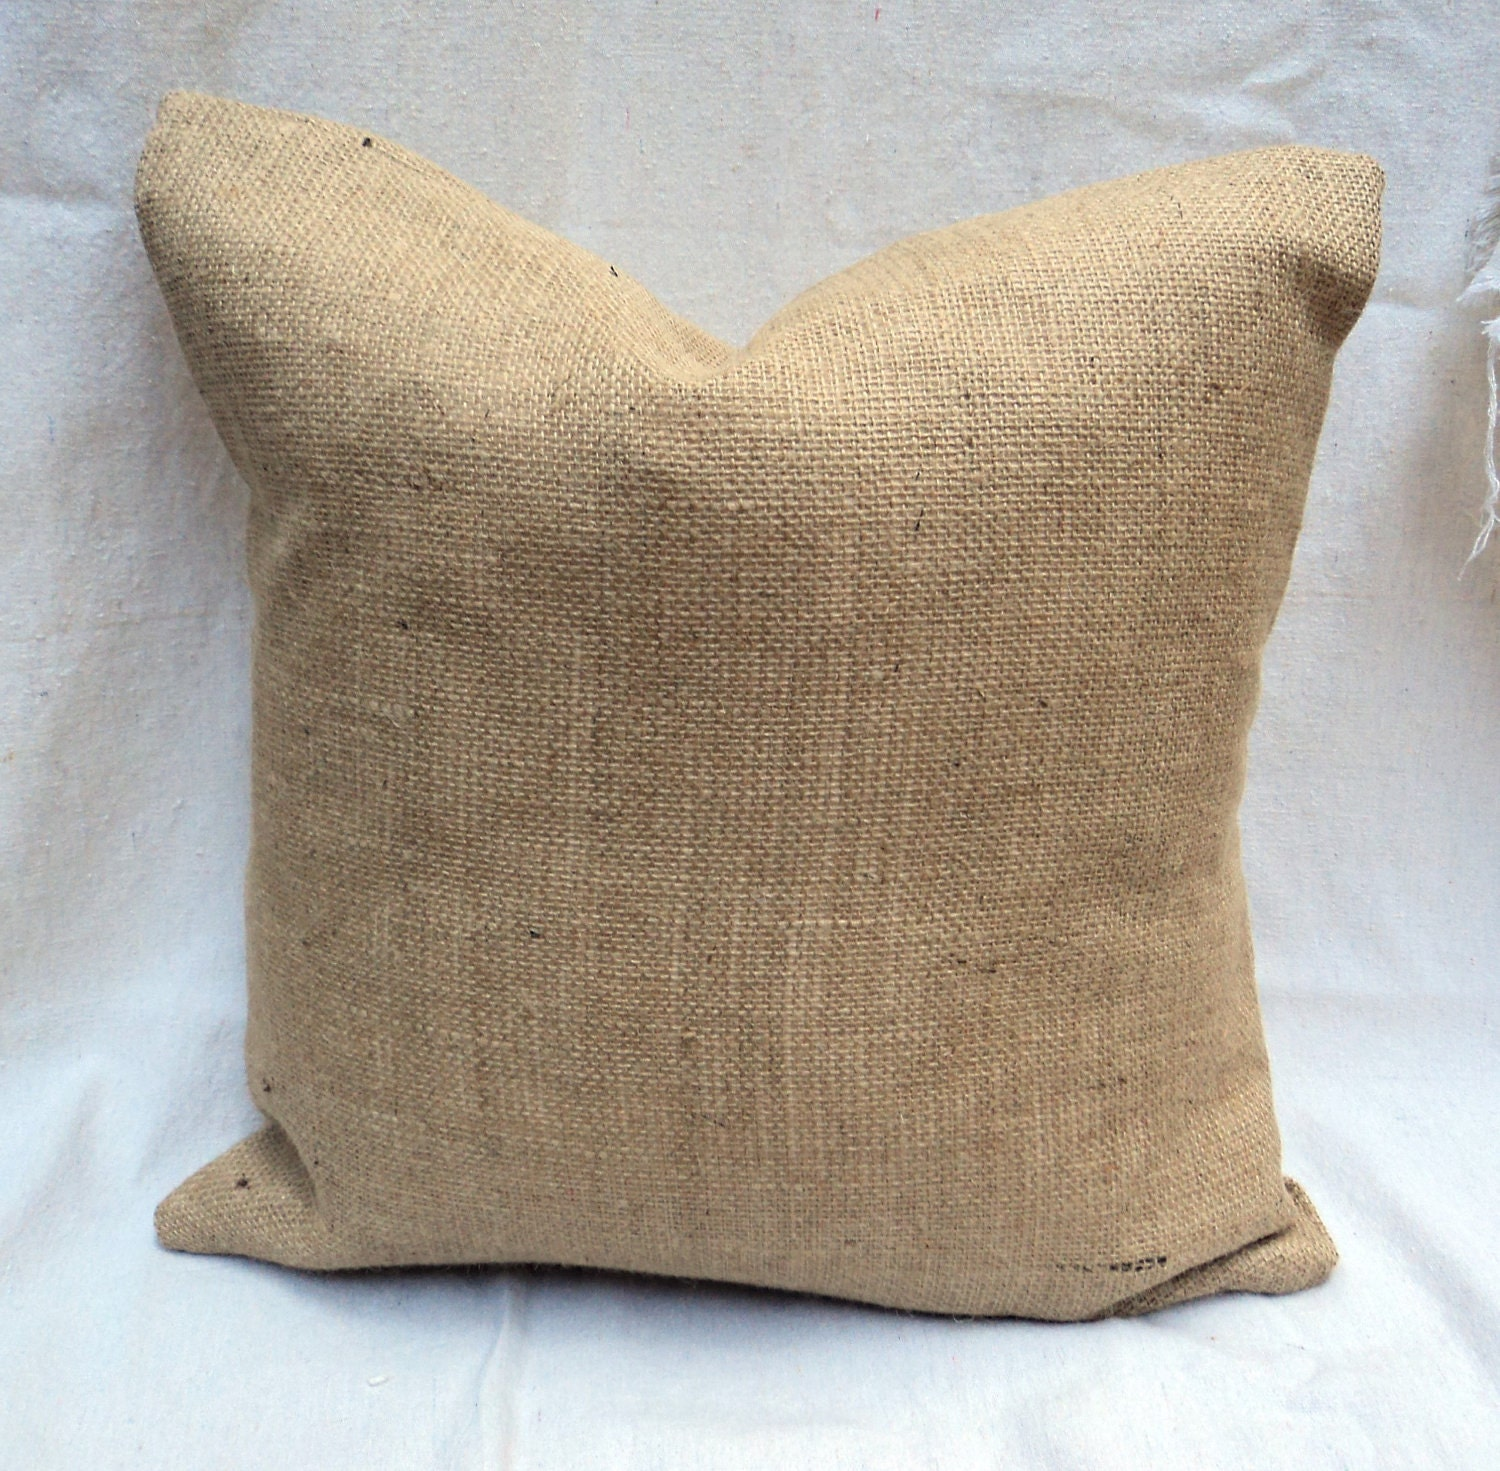 Lined Burlap Euro Shams Burlap Pillow 17 x 17